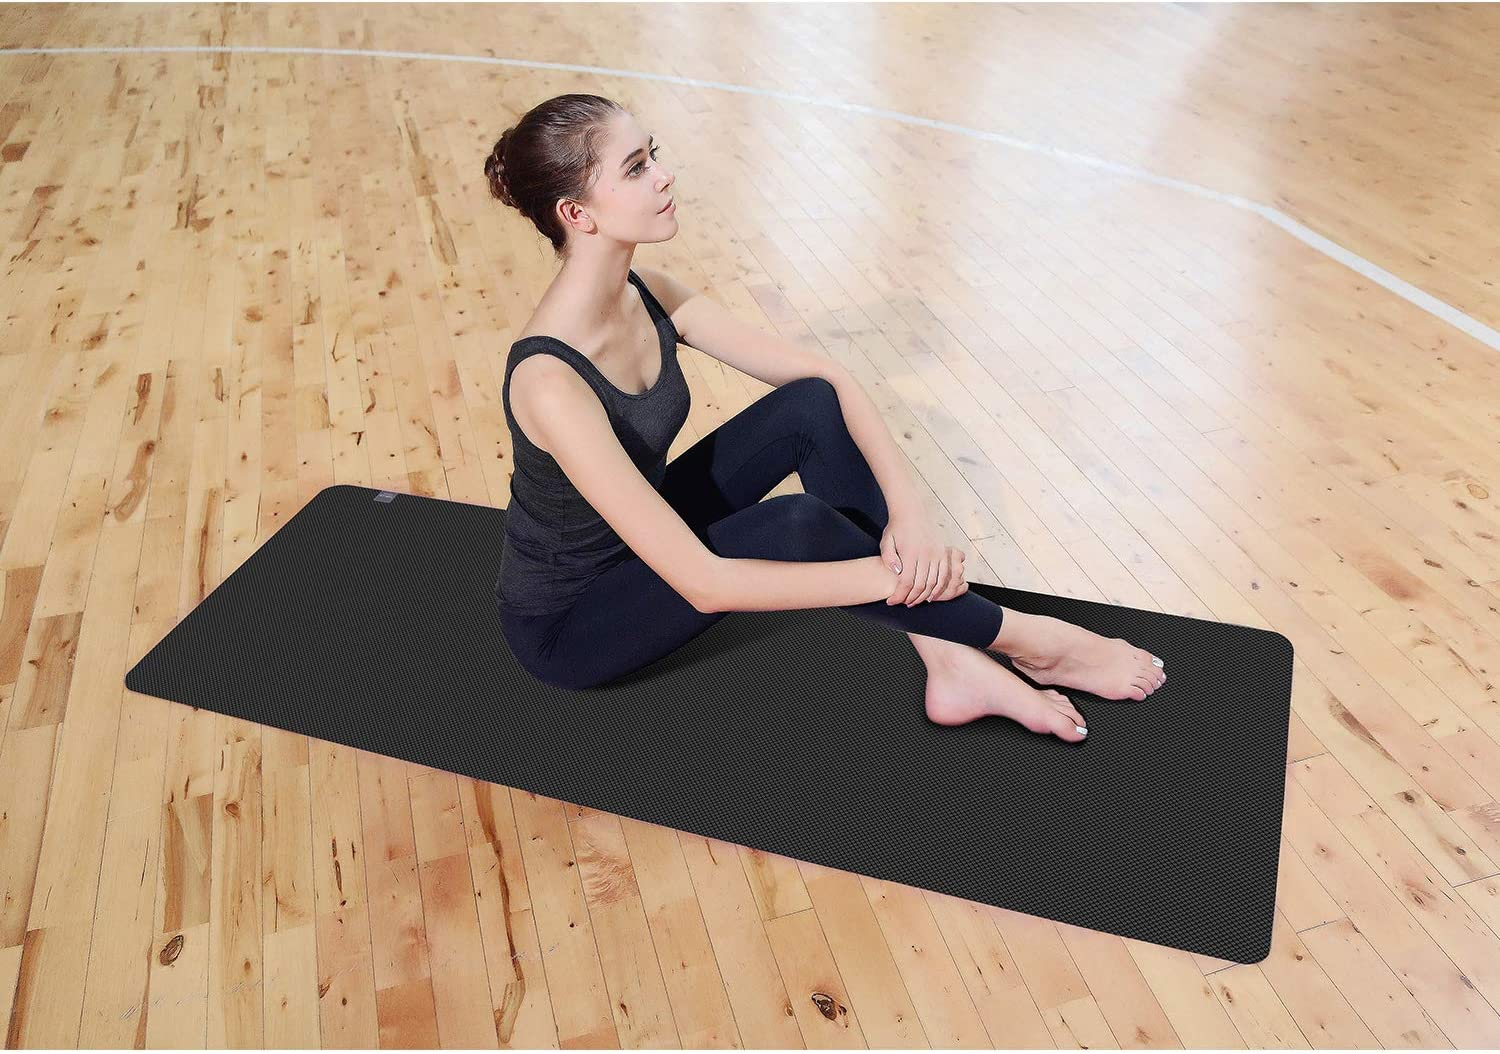 Amazon.com: TOPLUS - Esterilla de yoga plegable 1/16 ...